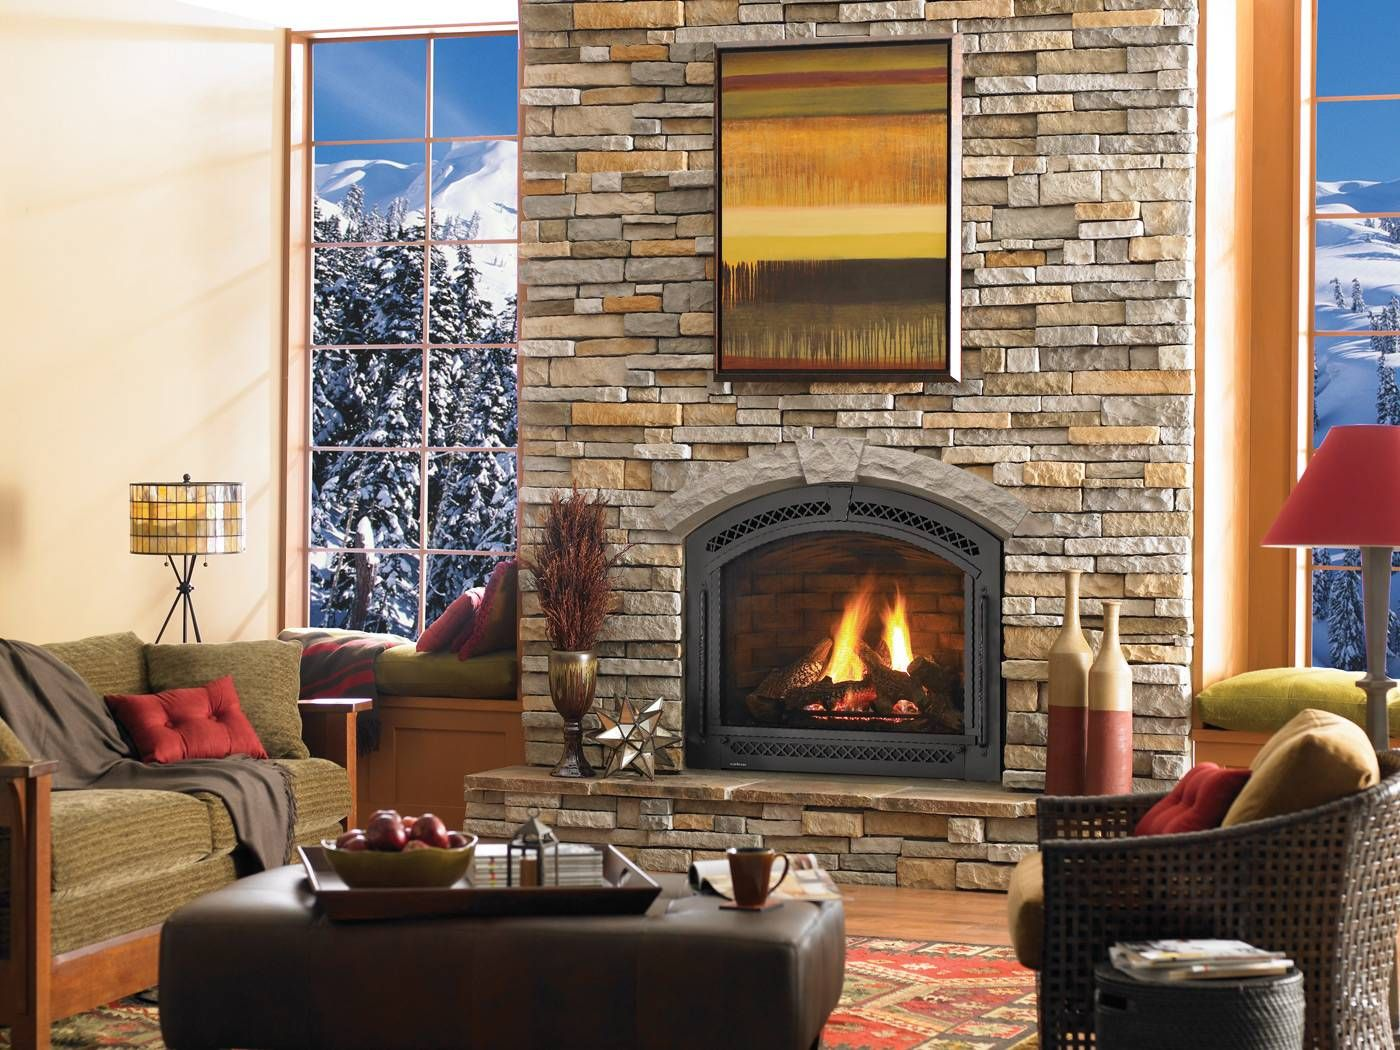 Efficiency of gas fireplace - 17 Best Images About Fireplace Insert On Pinterest Fireplace Inserts Hearth And Gas Fireplaces